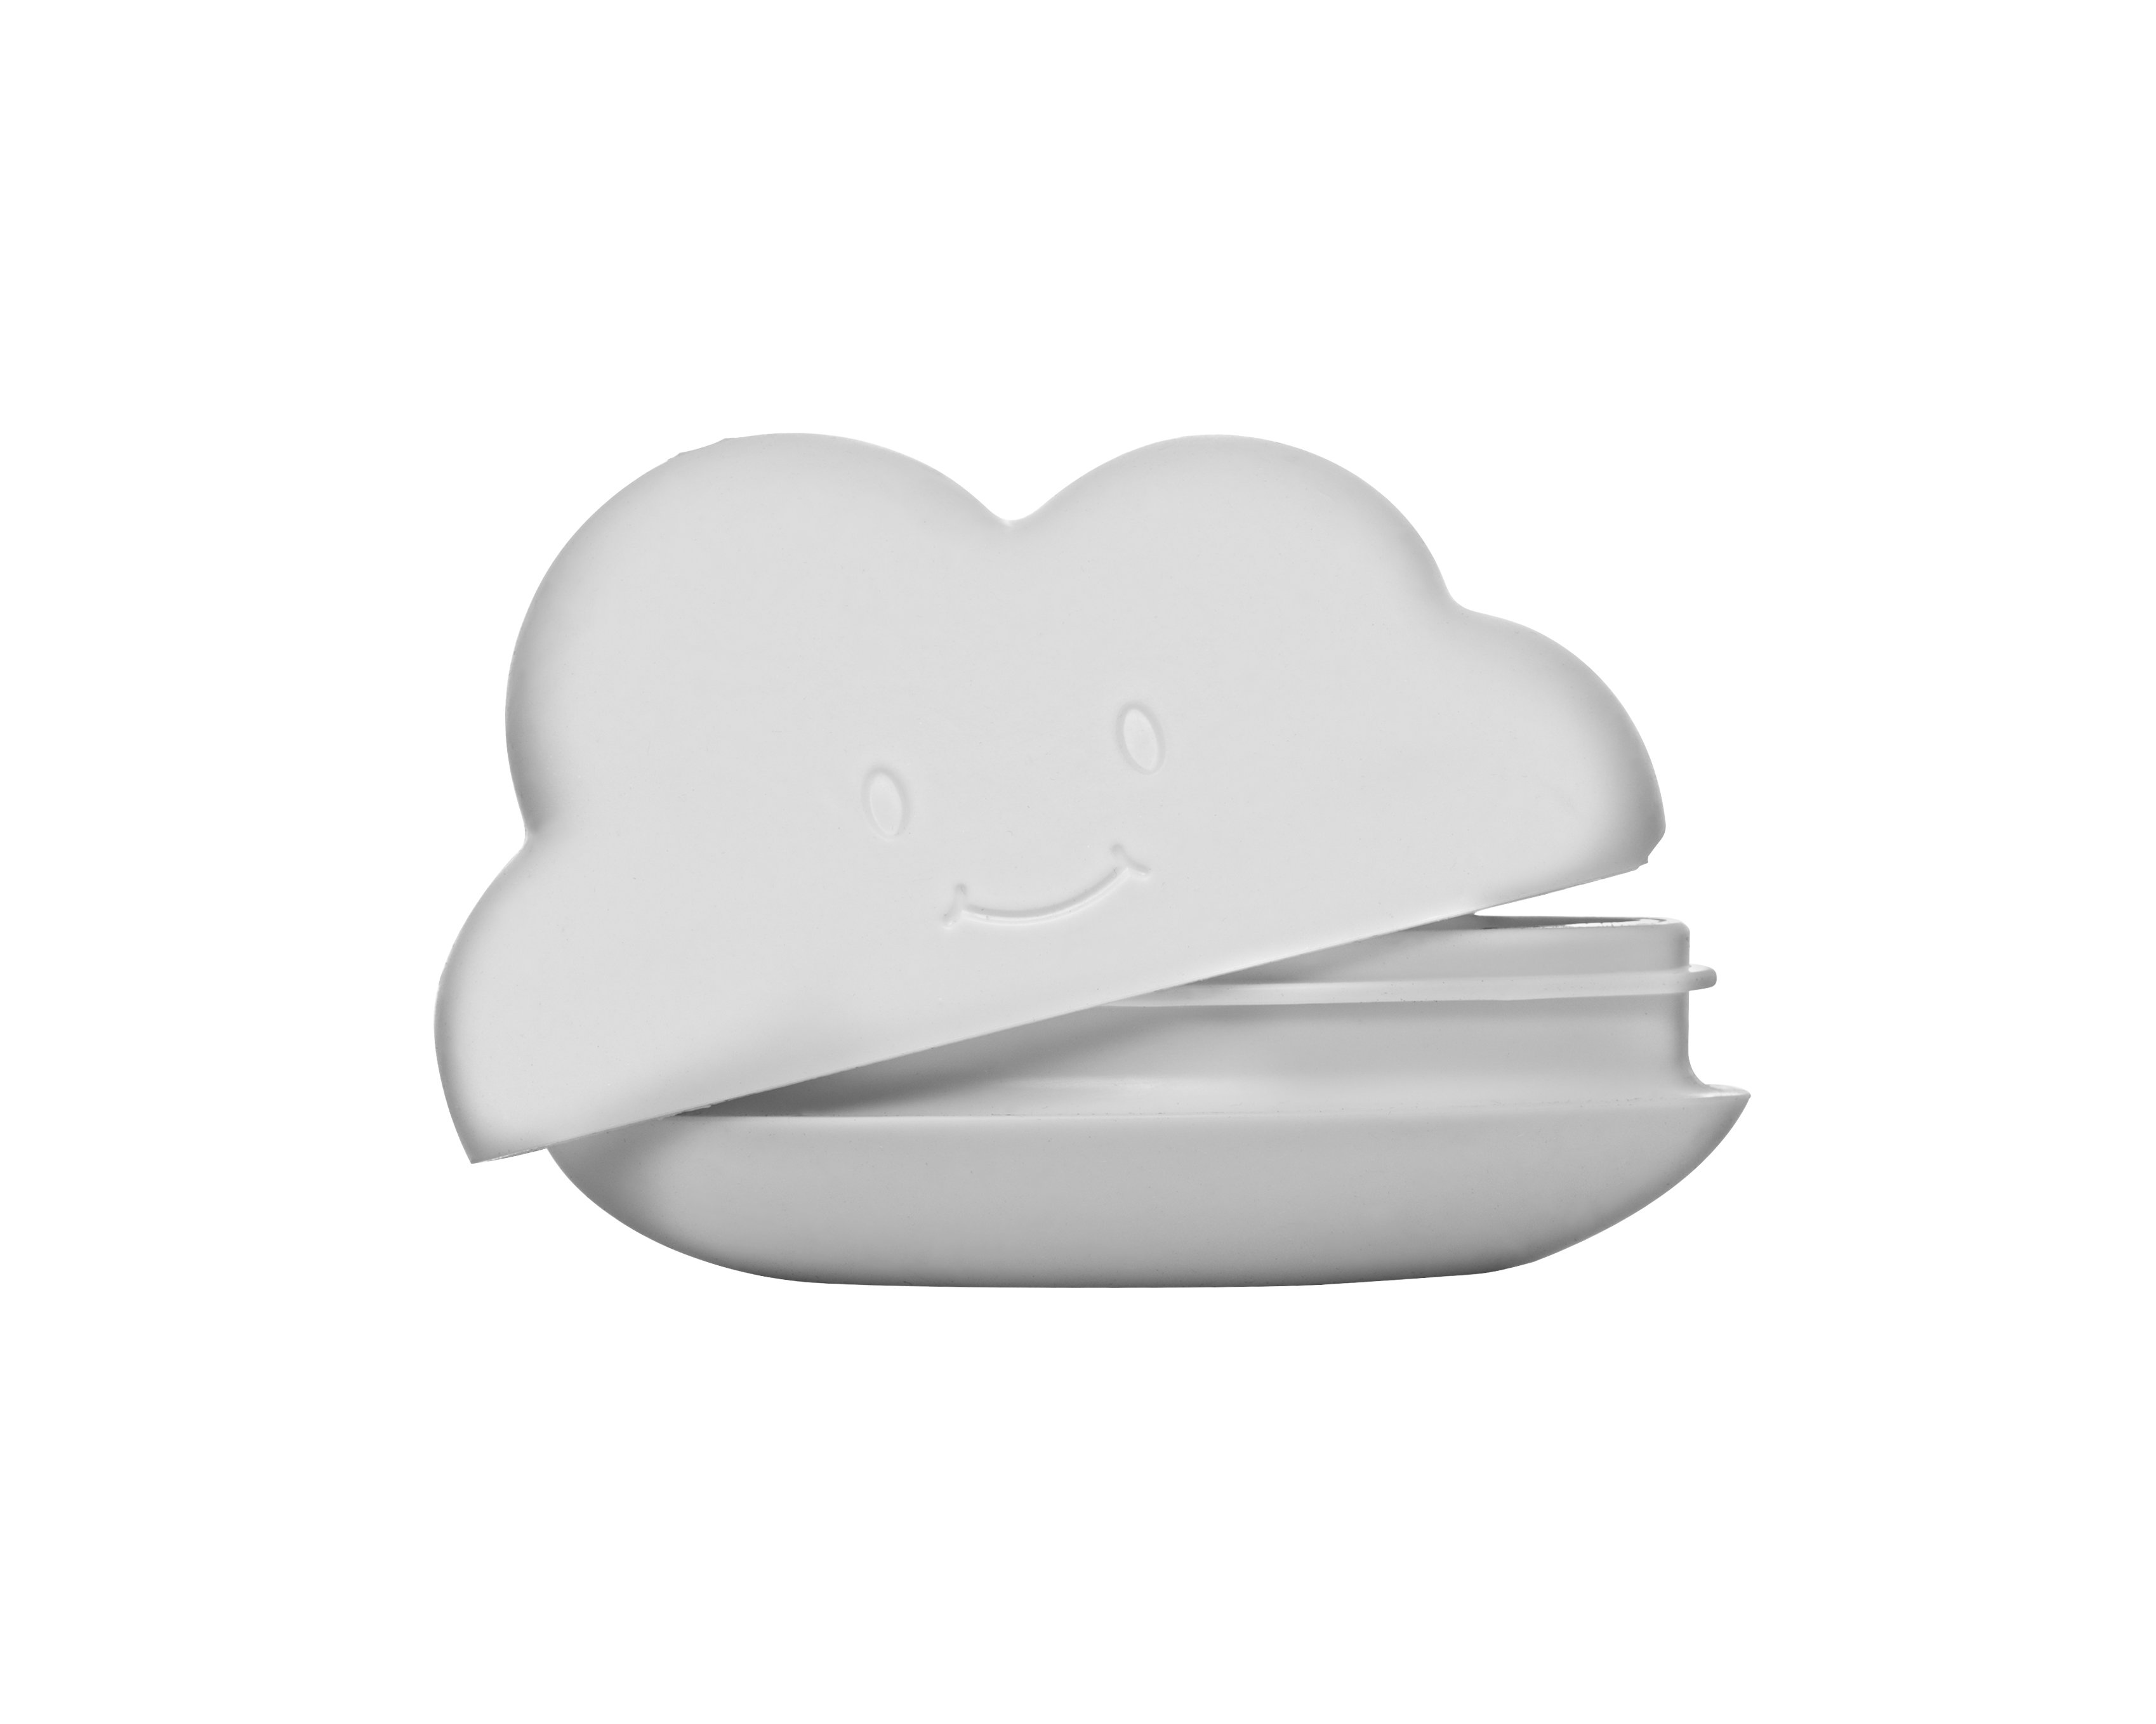 Cloud + Droplet Bath Toy Set - Project Nursery